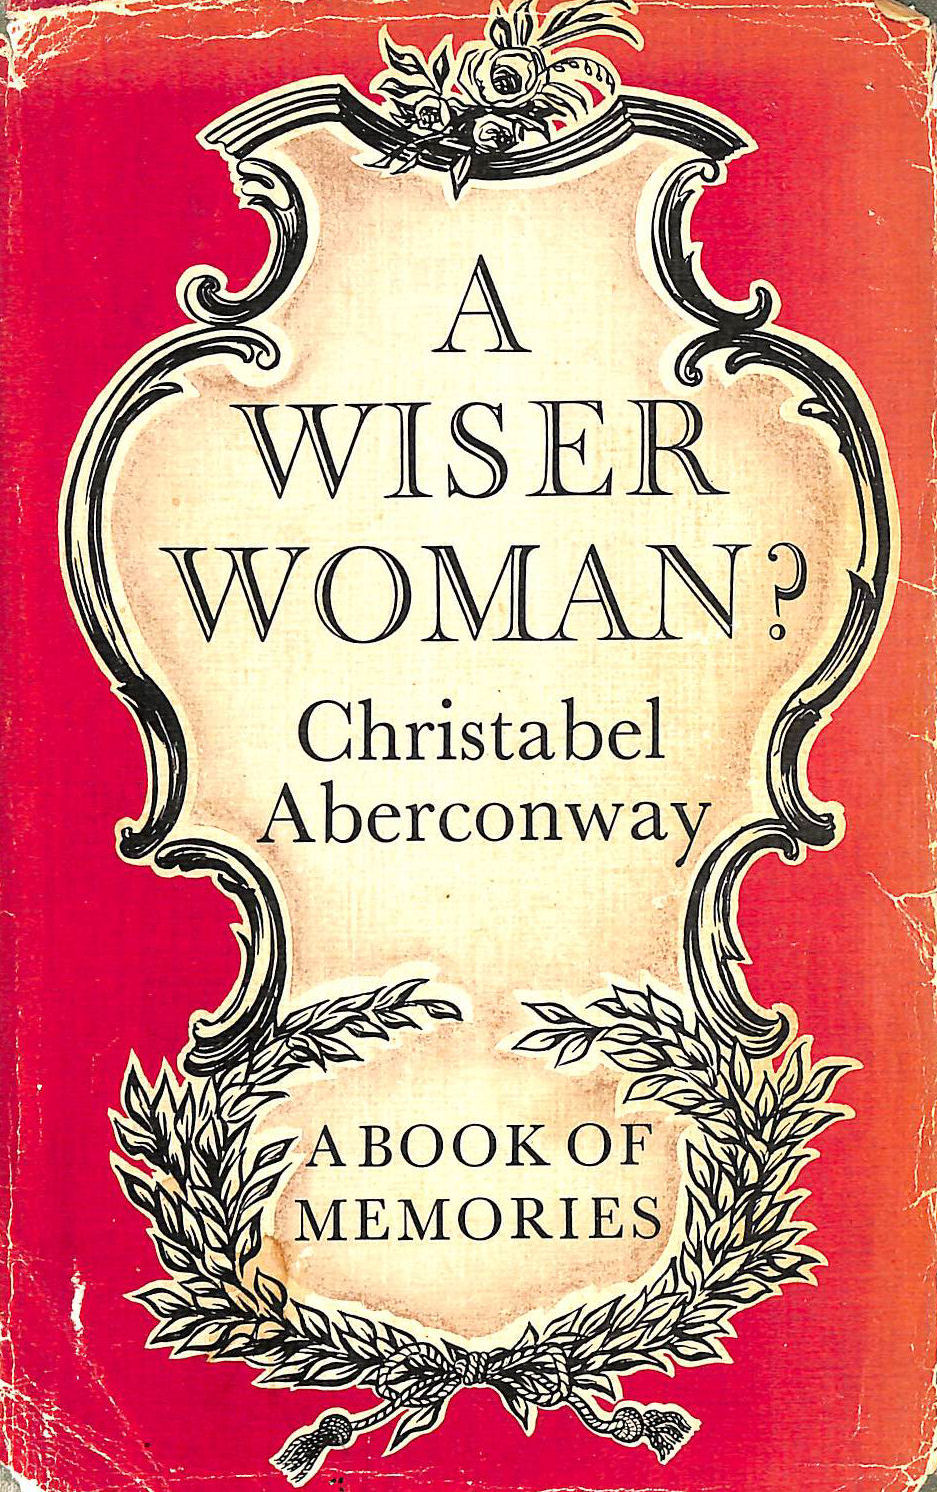 Image for A wiser woman? A book of memories